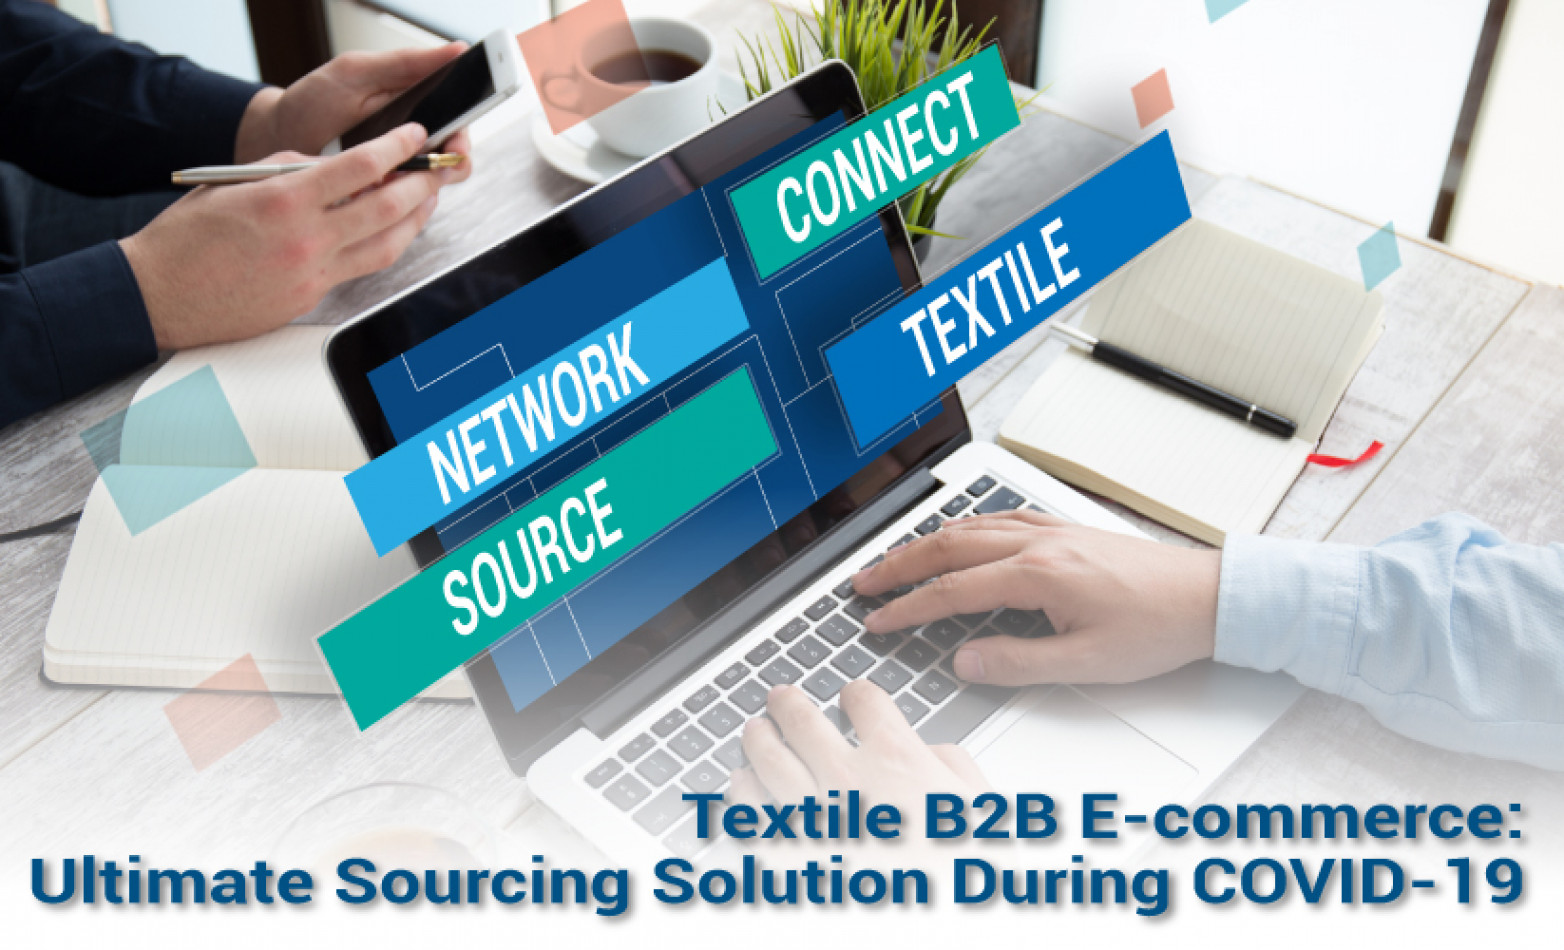 Textile E-commerce B2B Platform to Be the Ultimate Solution in Crisis Like CoronaVirus-19